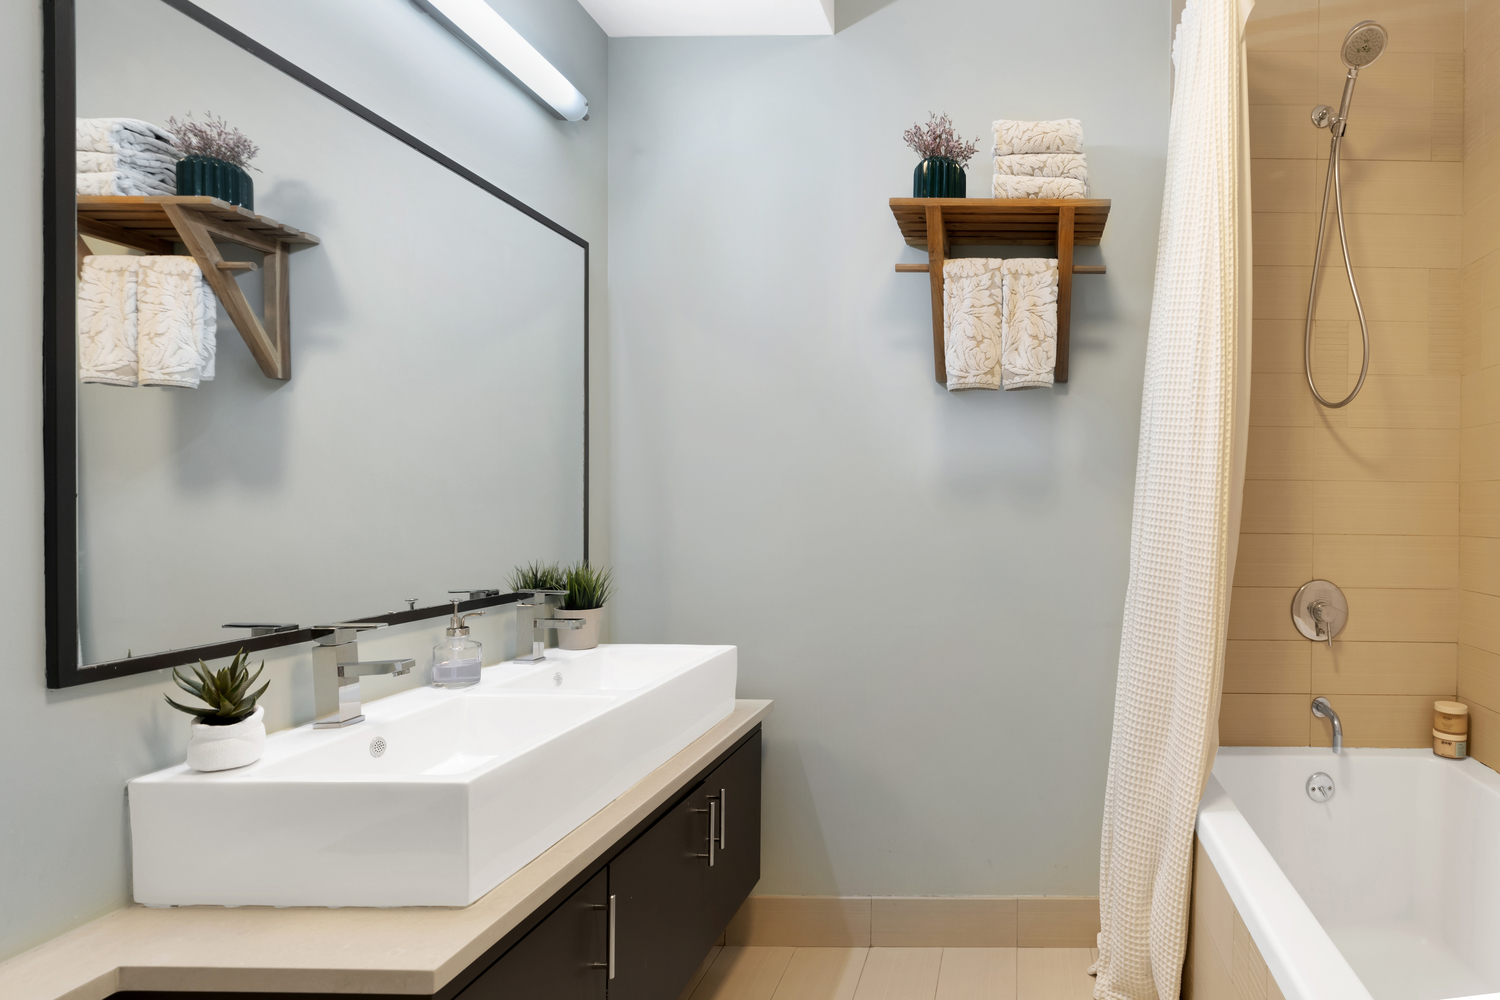 Apartment for sale at 46 South 2nd Street, Apt 3D